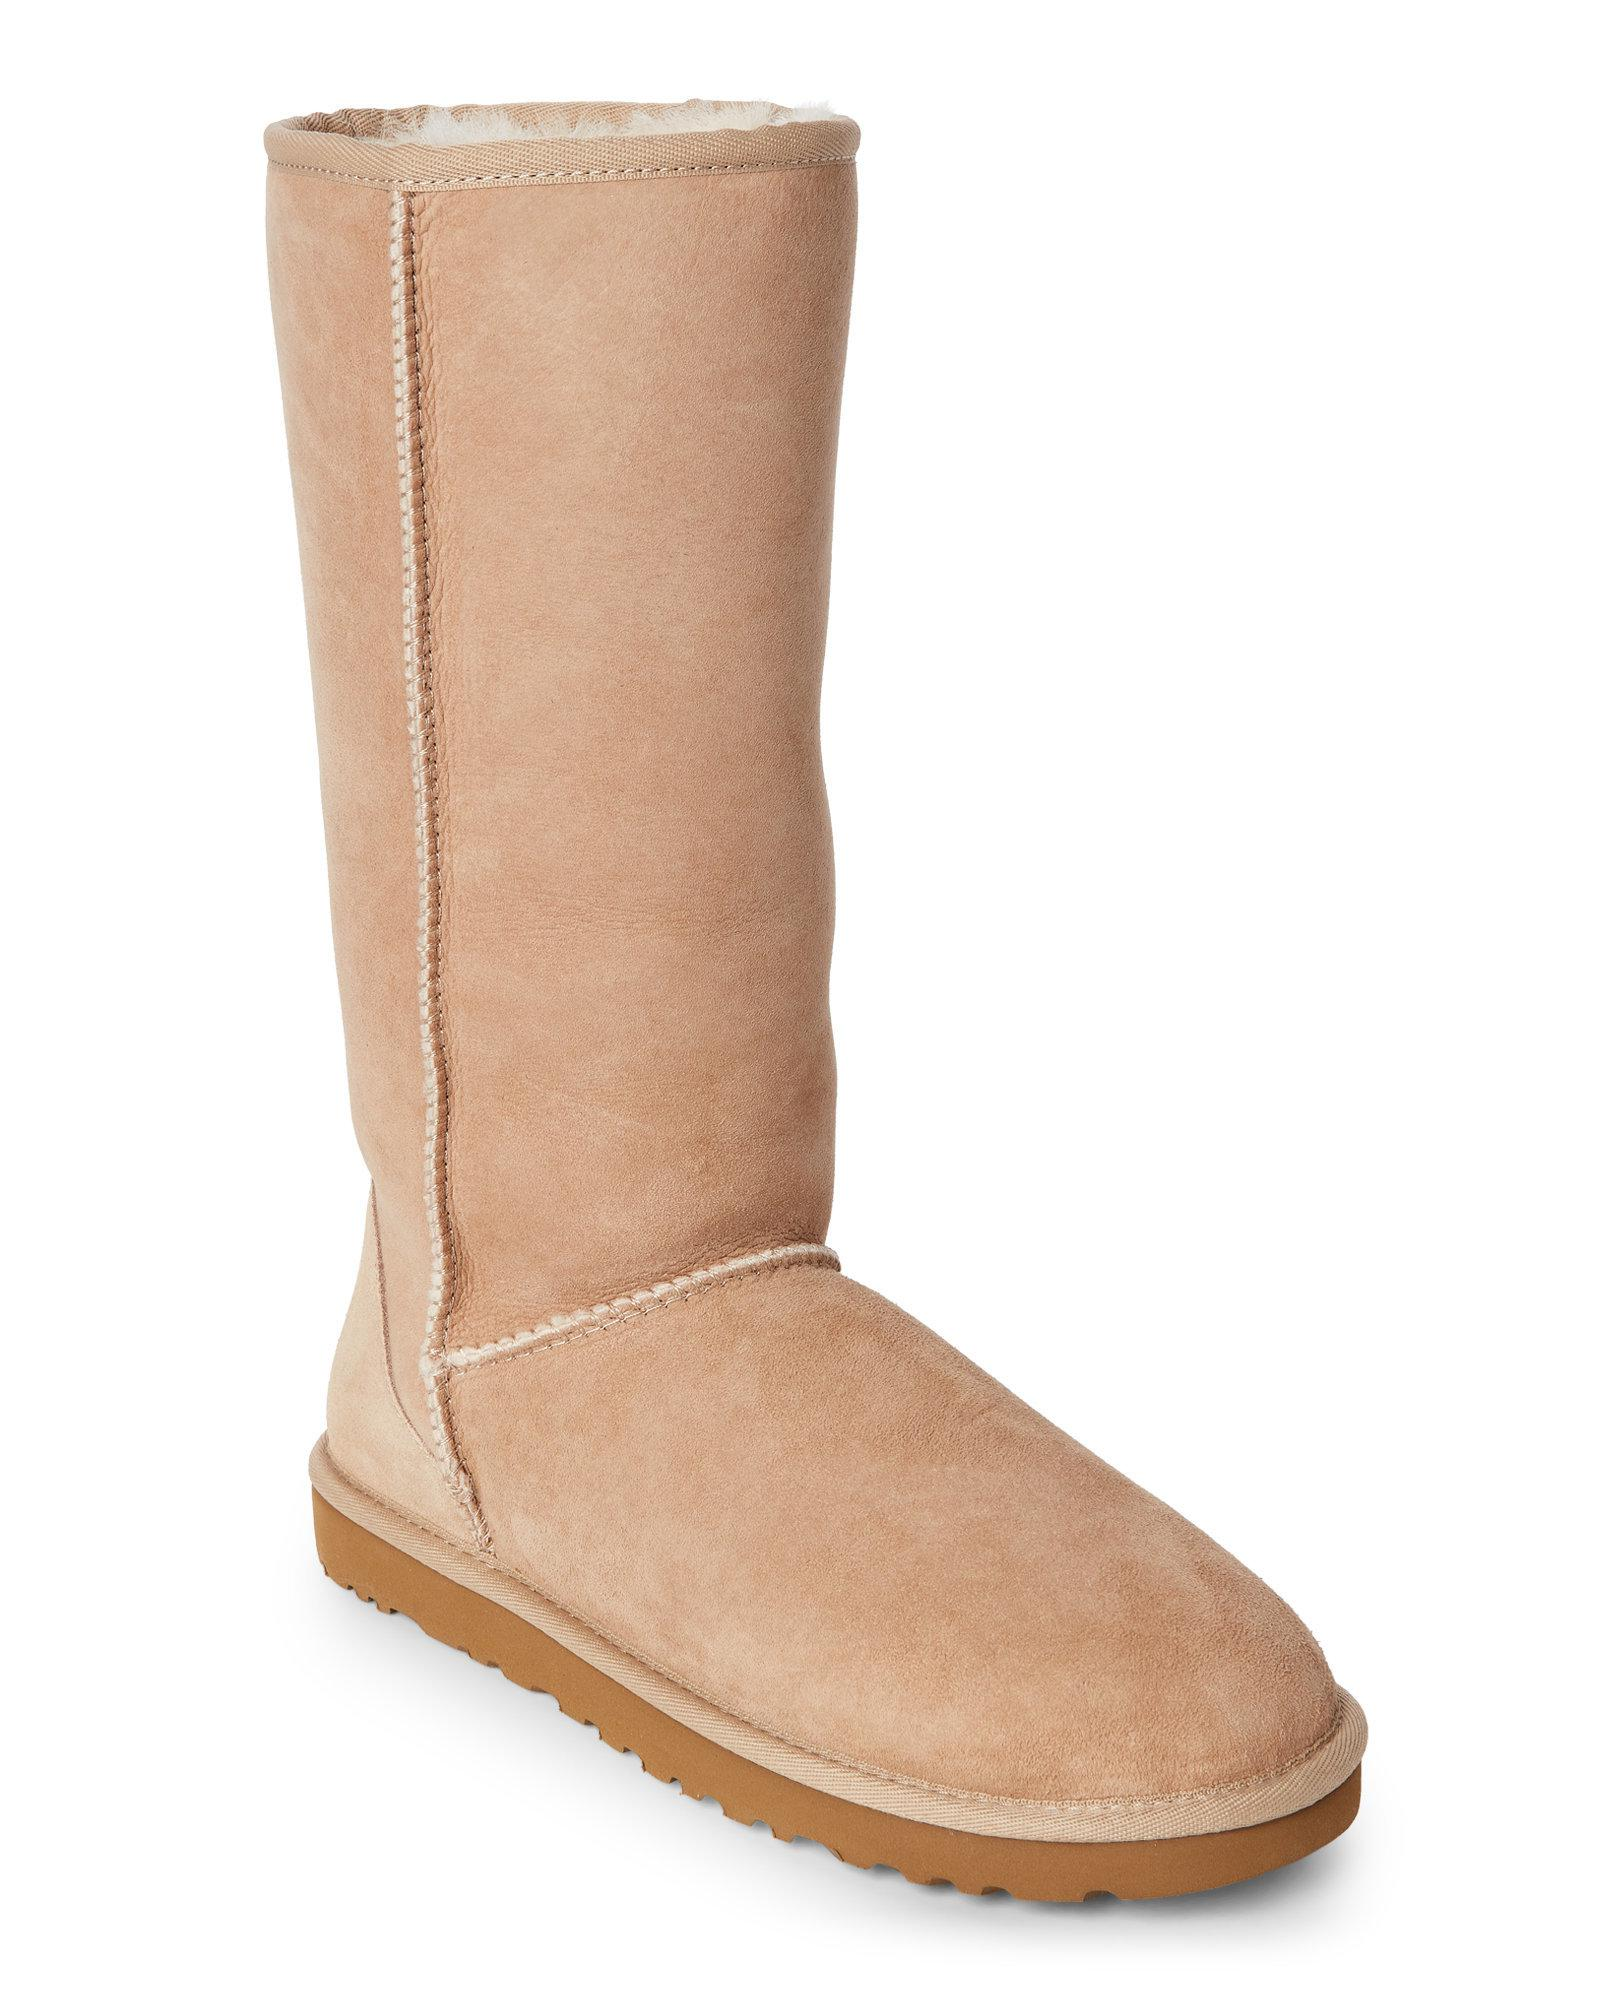 51f55fe4455 Lyst - UGG Sand Real Fur Classic Tall Boots in Natural